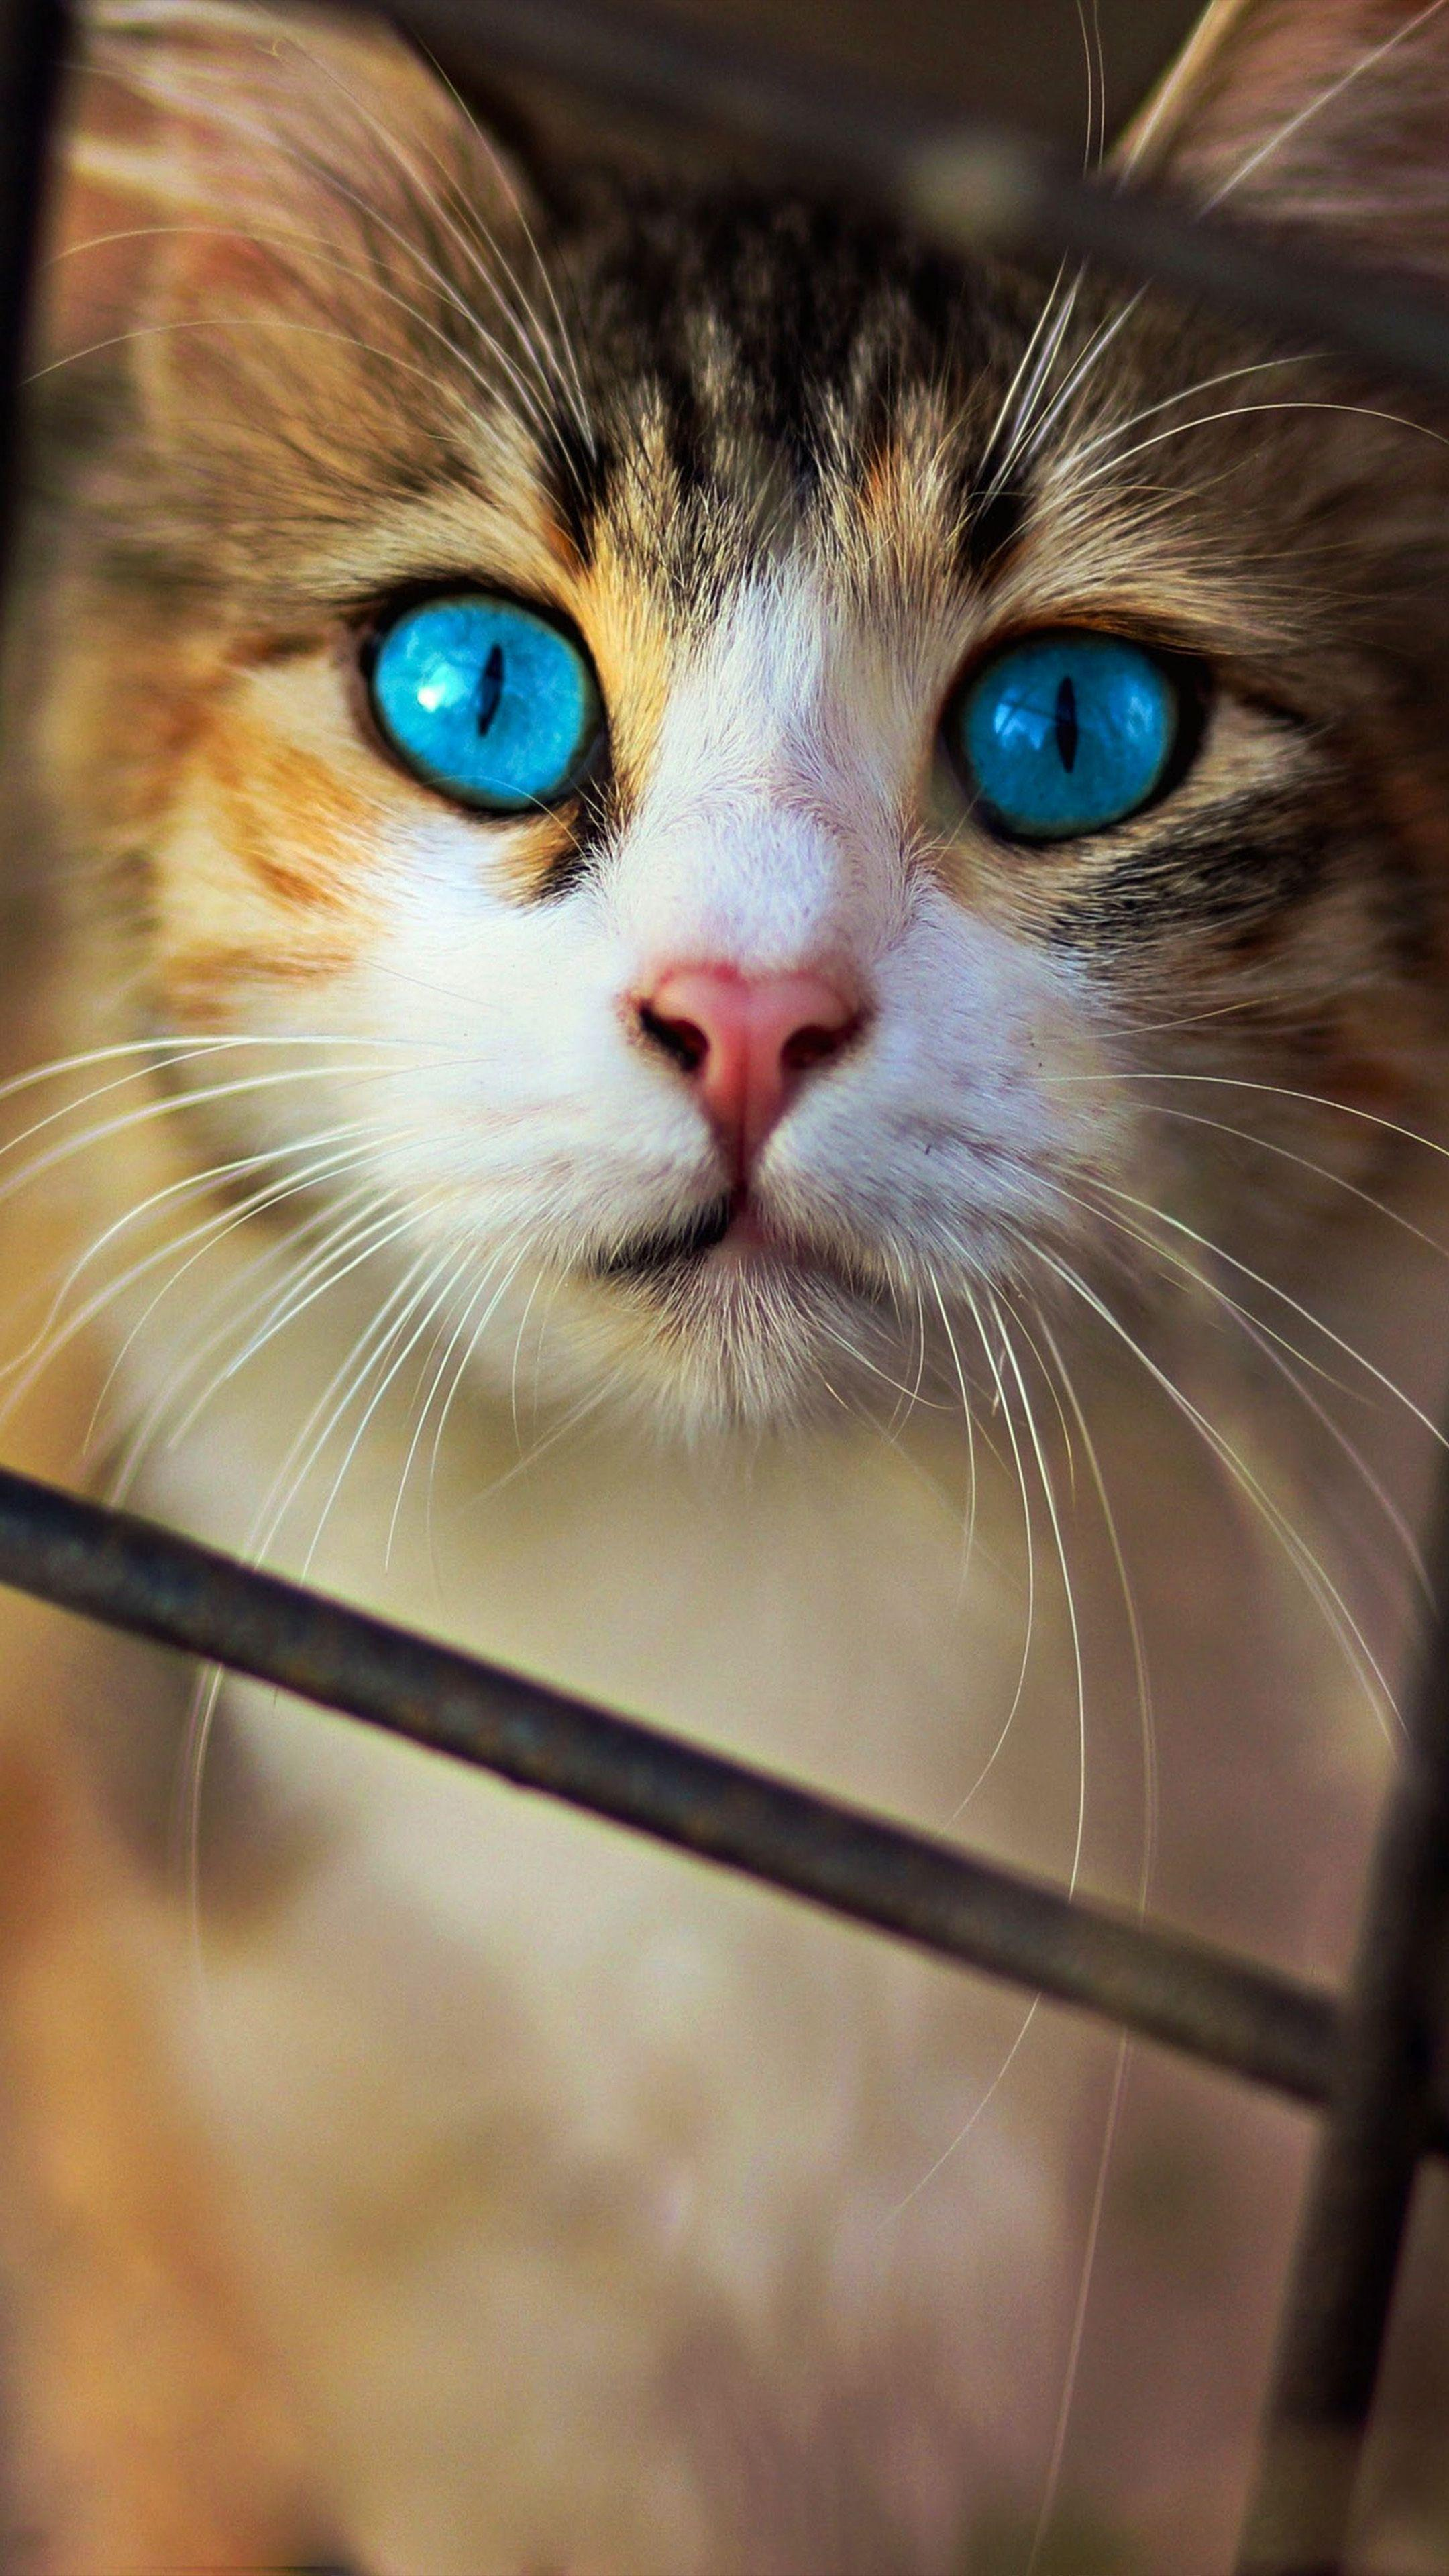 Cute Cat For Mobile Wallpapers And Hd Backgrounds Free Download On Picgaga